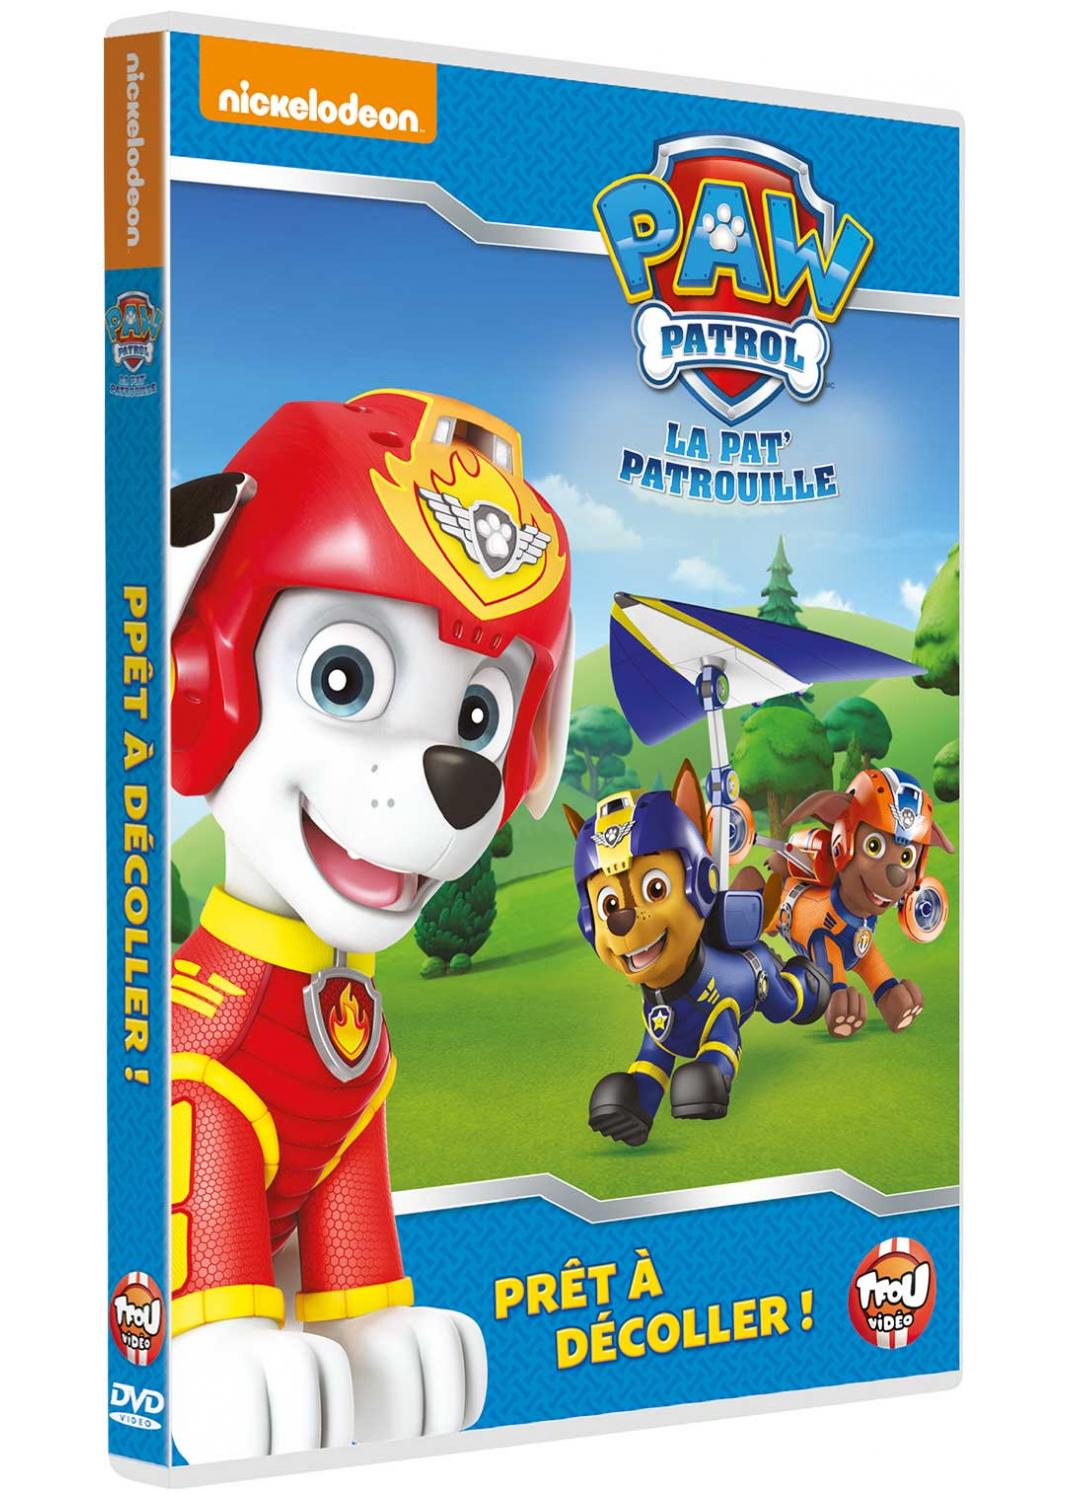 image paw patrol la pat 39 patrouille pr t d coller paw patrol wiki fandom. Black Bedroom Furniture Sets. Home Design Ideas